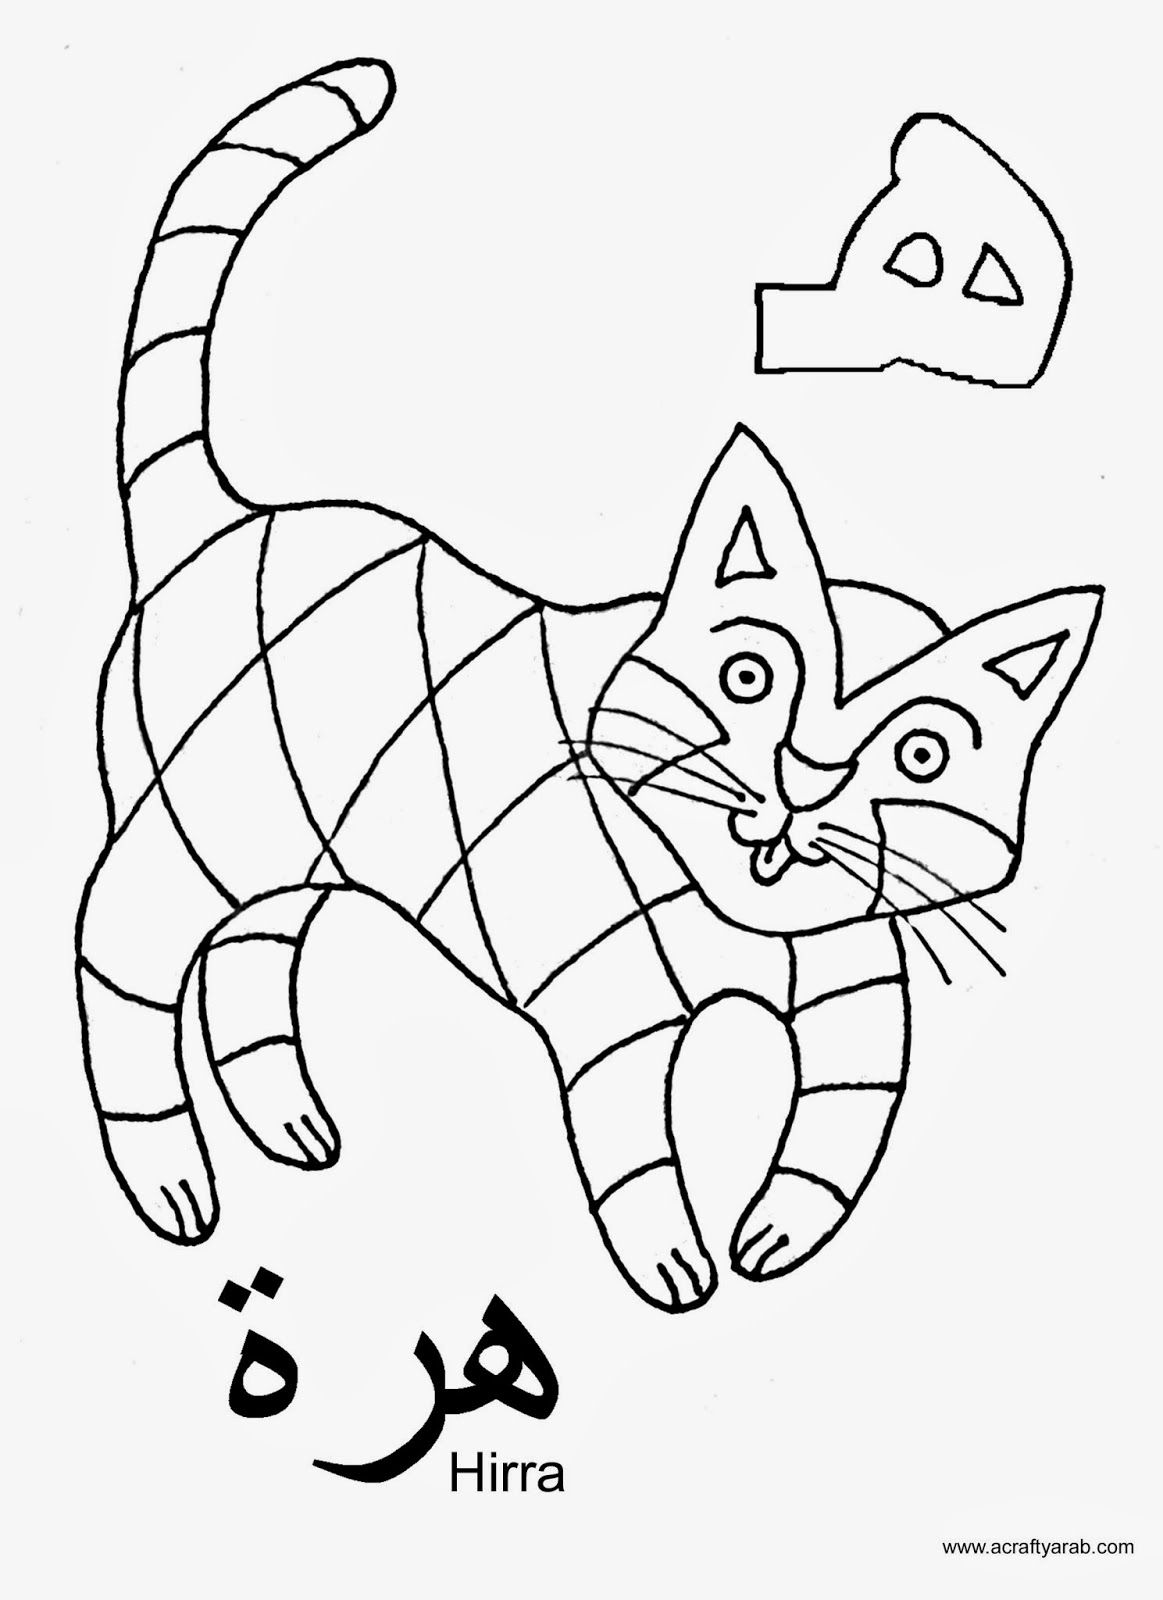 A Crafty Arab: Arabic Alphabet coloring pages...Haa is for